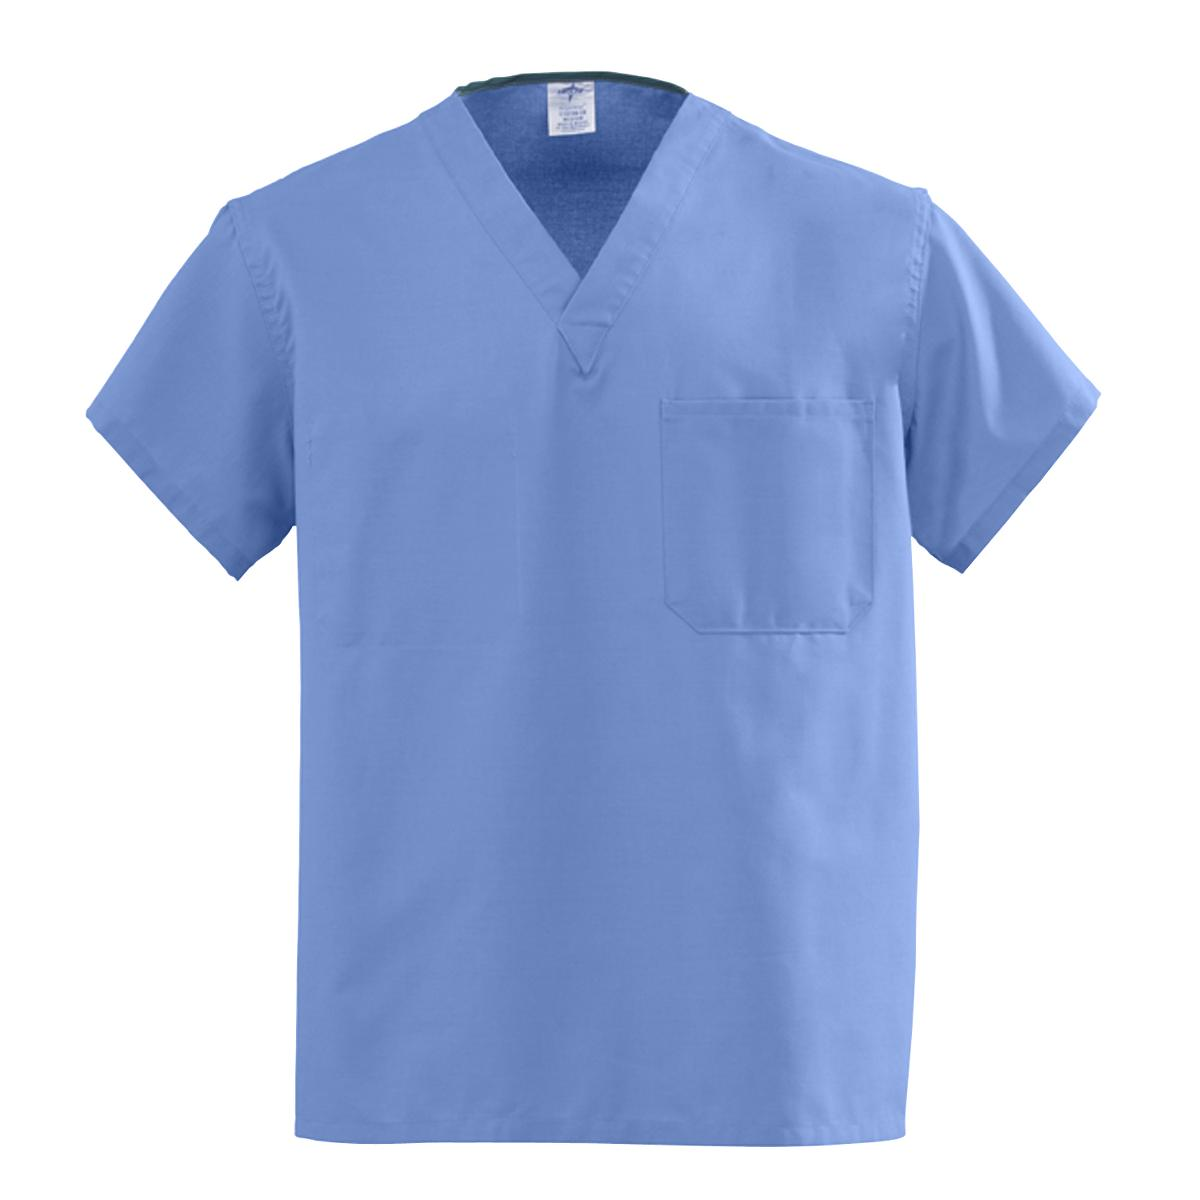 Hospital medical doctors disposable scrub suits